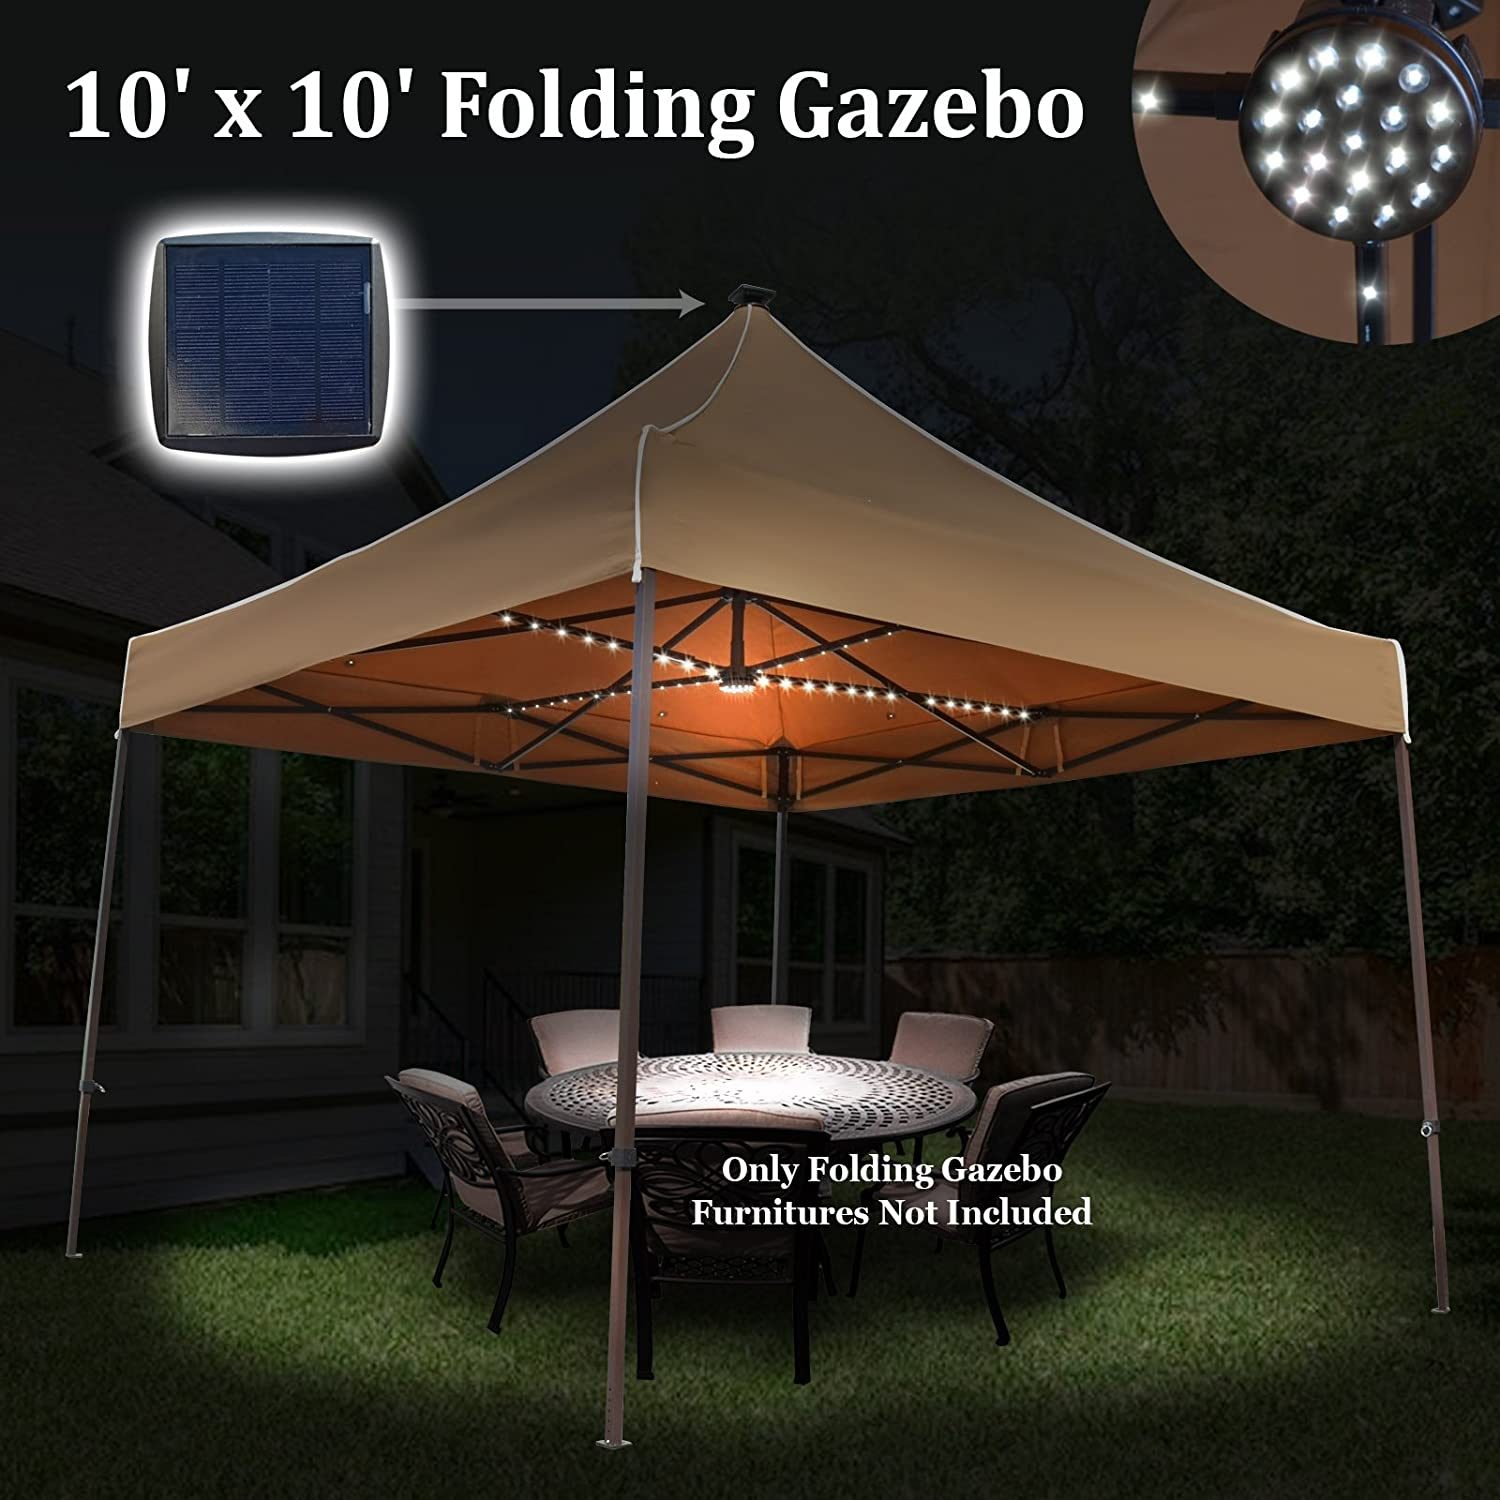 shade canopy instant outdoor trail lighting light tent system with sun p cancel led coleman s content inflow garden global patio res shelter inflowcomponent